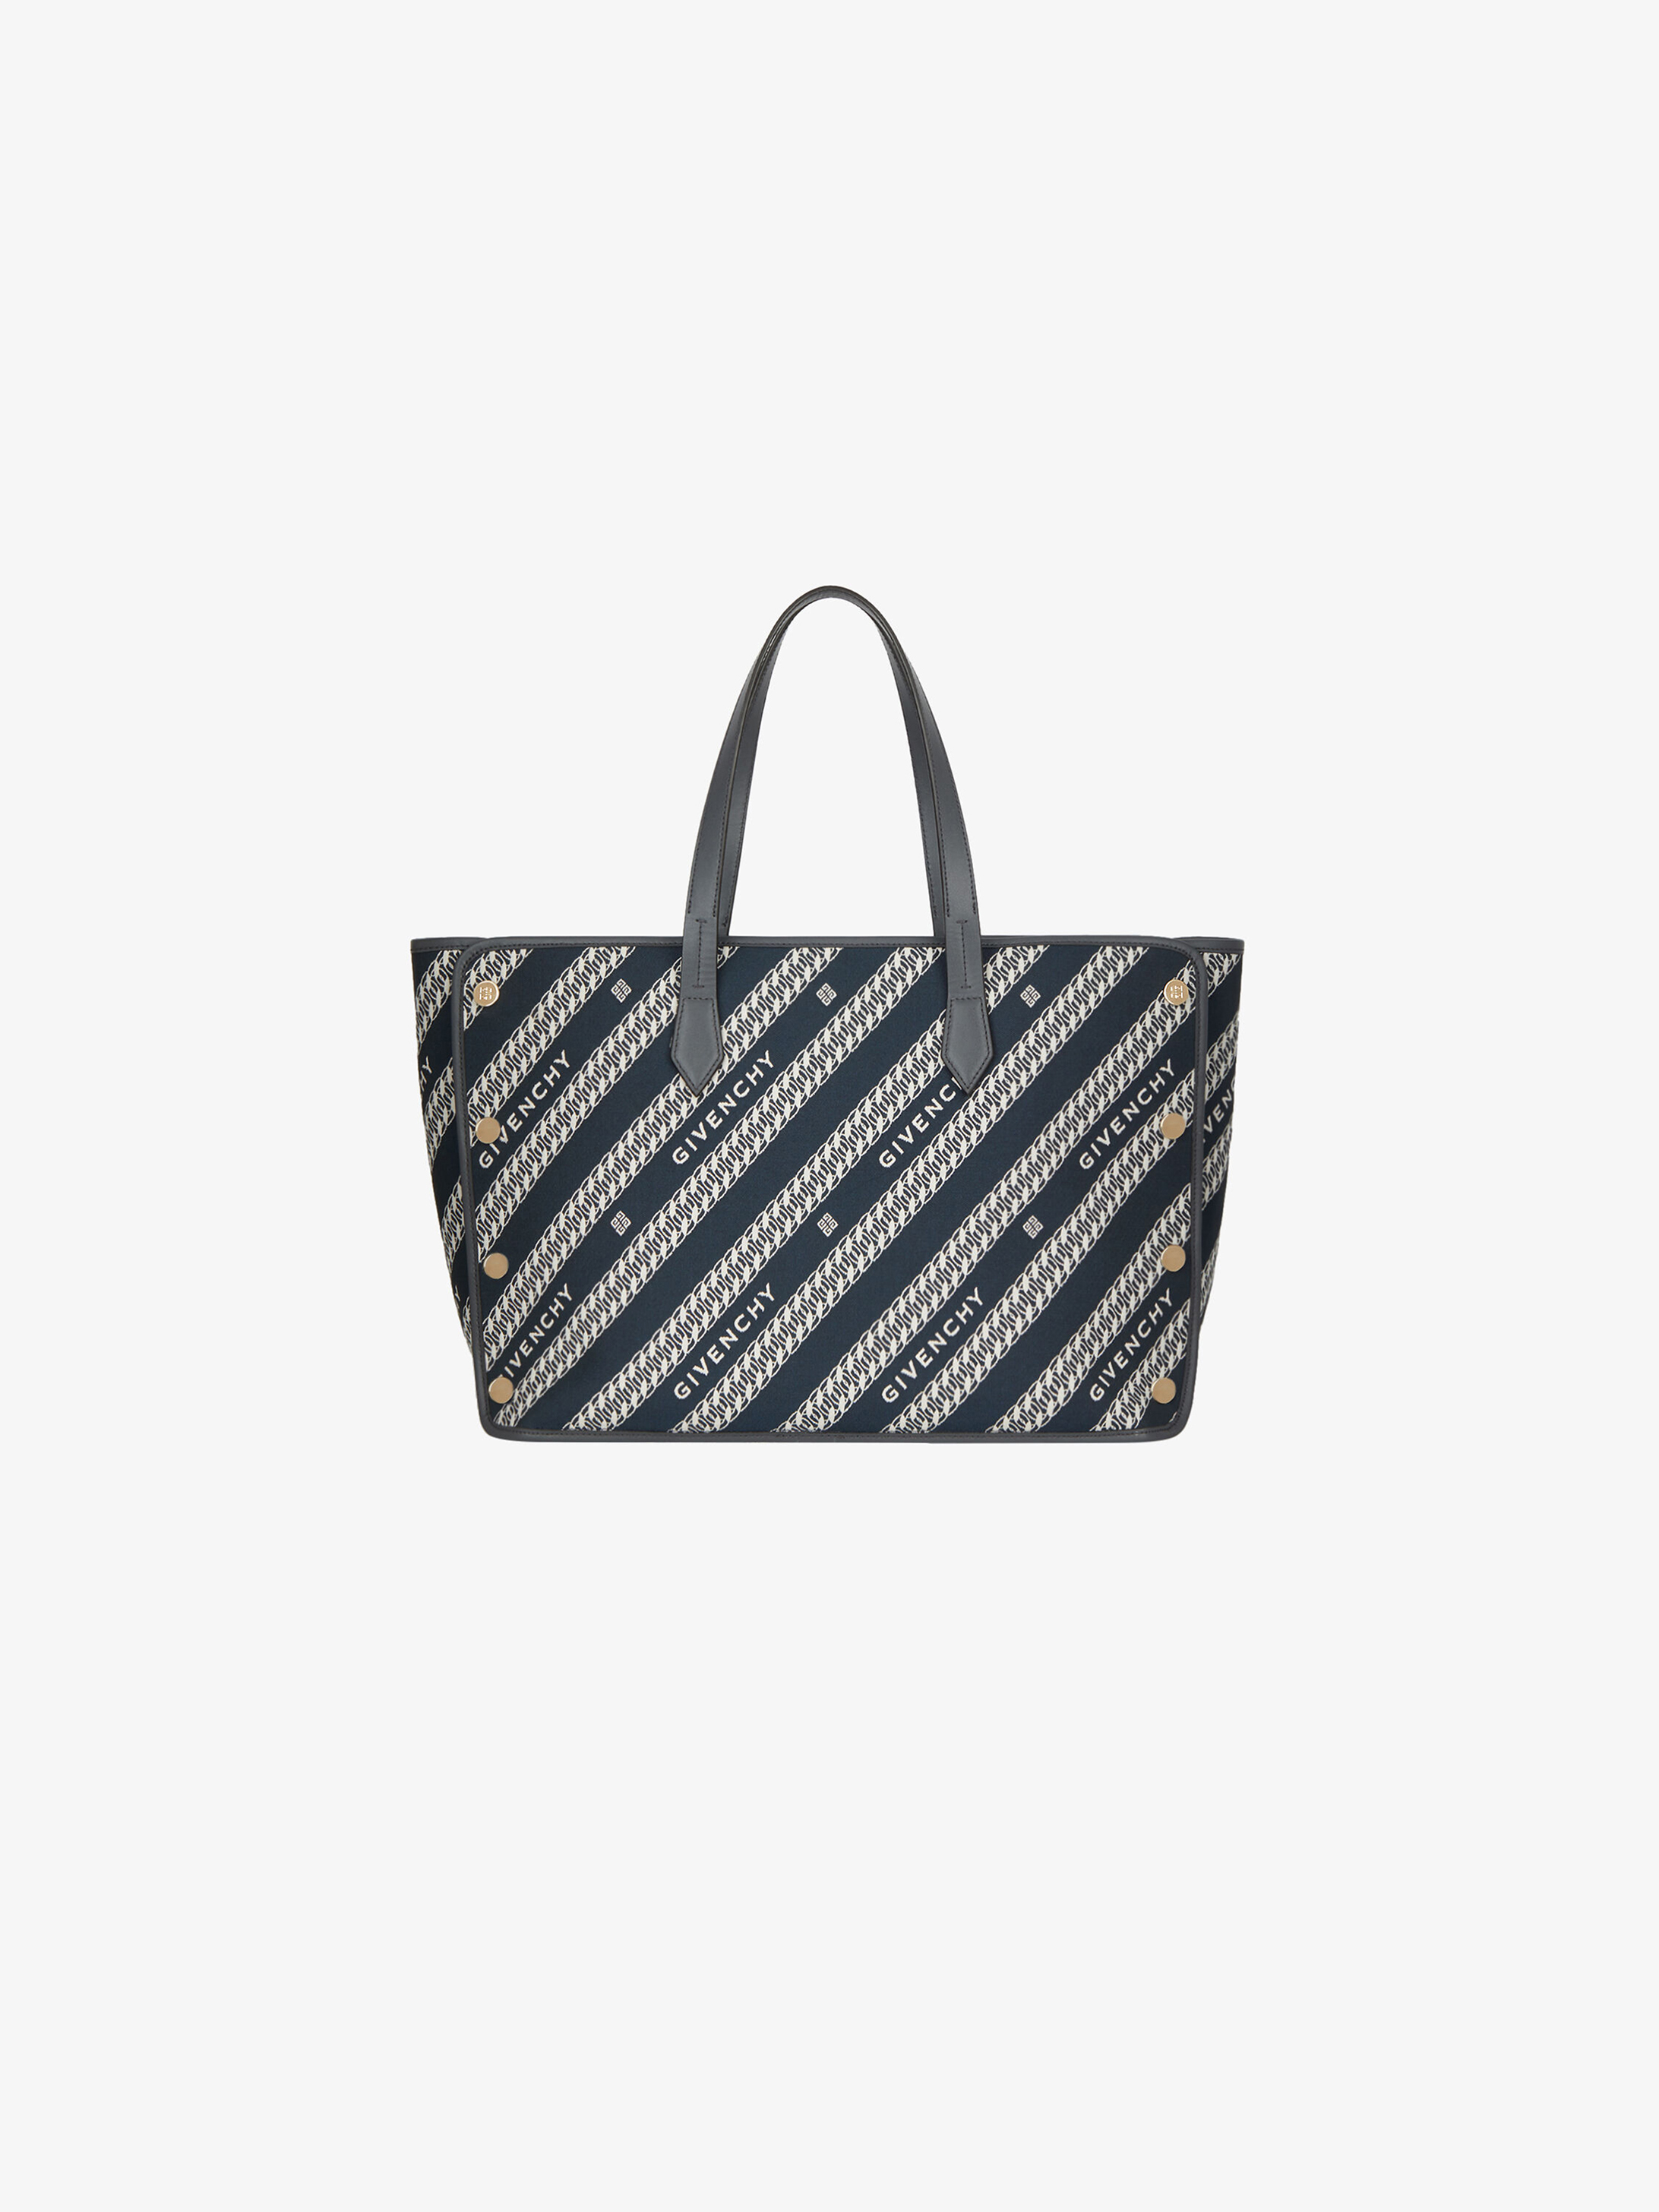 Medium BOND shopper in GIVENCHYcanvas chain jacquard